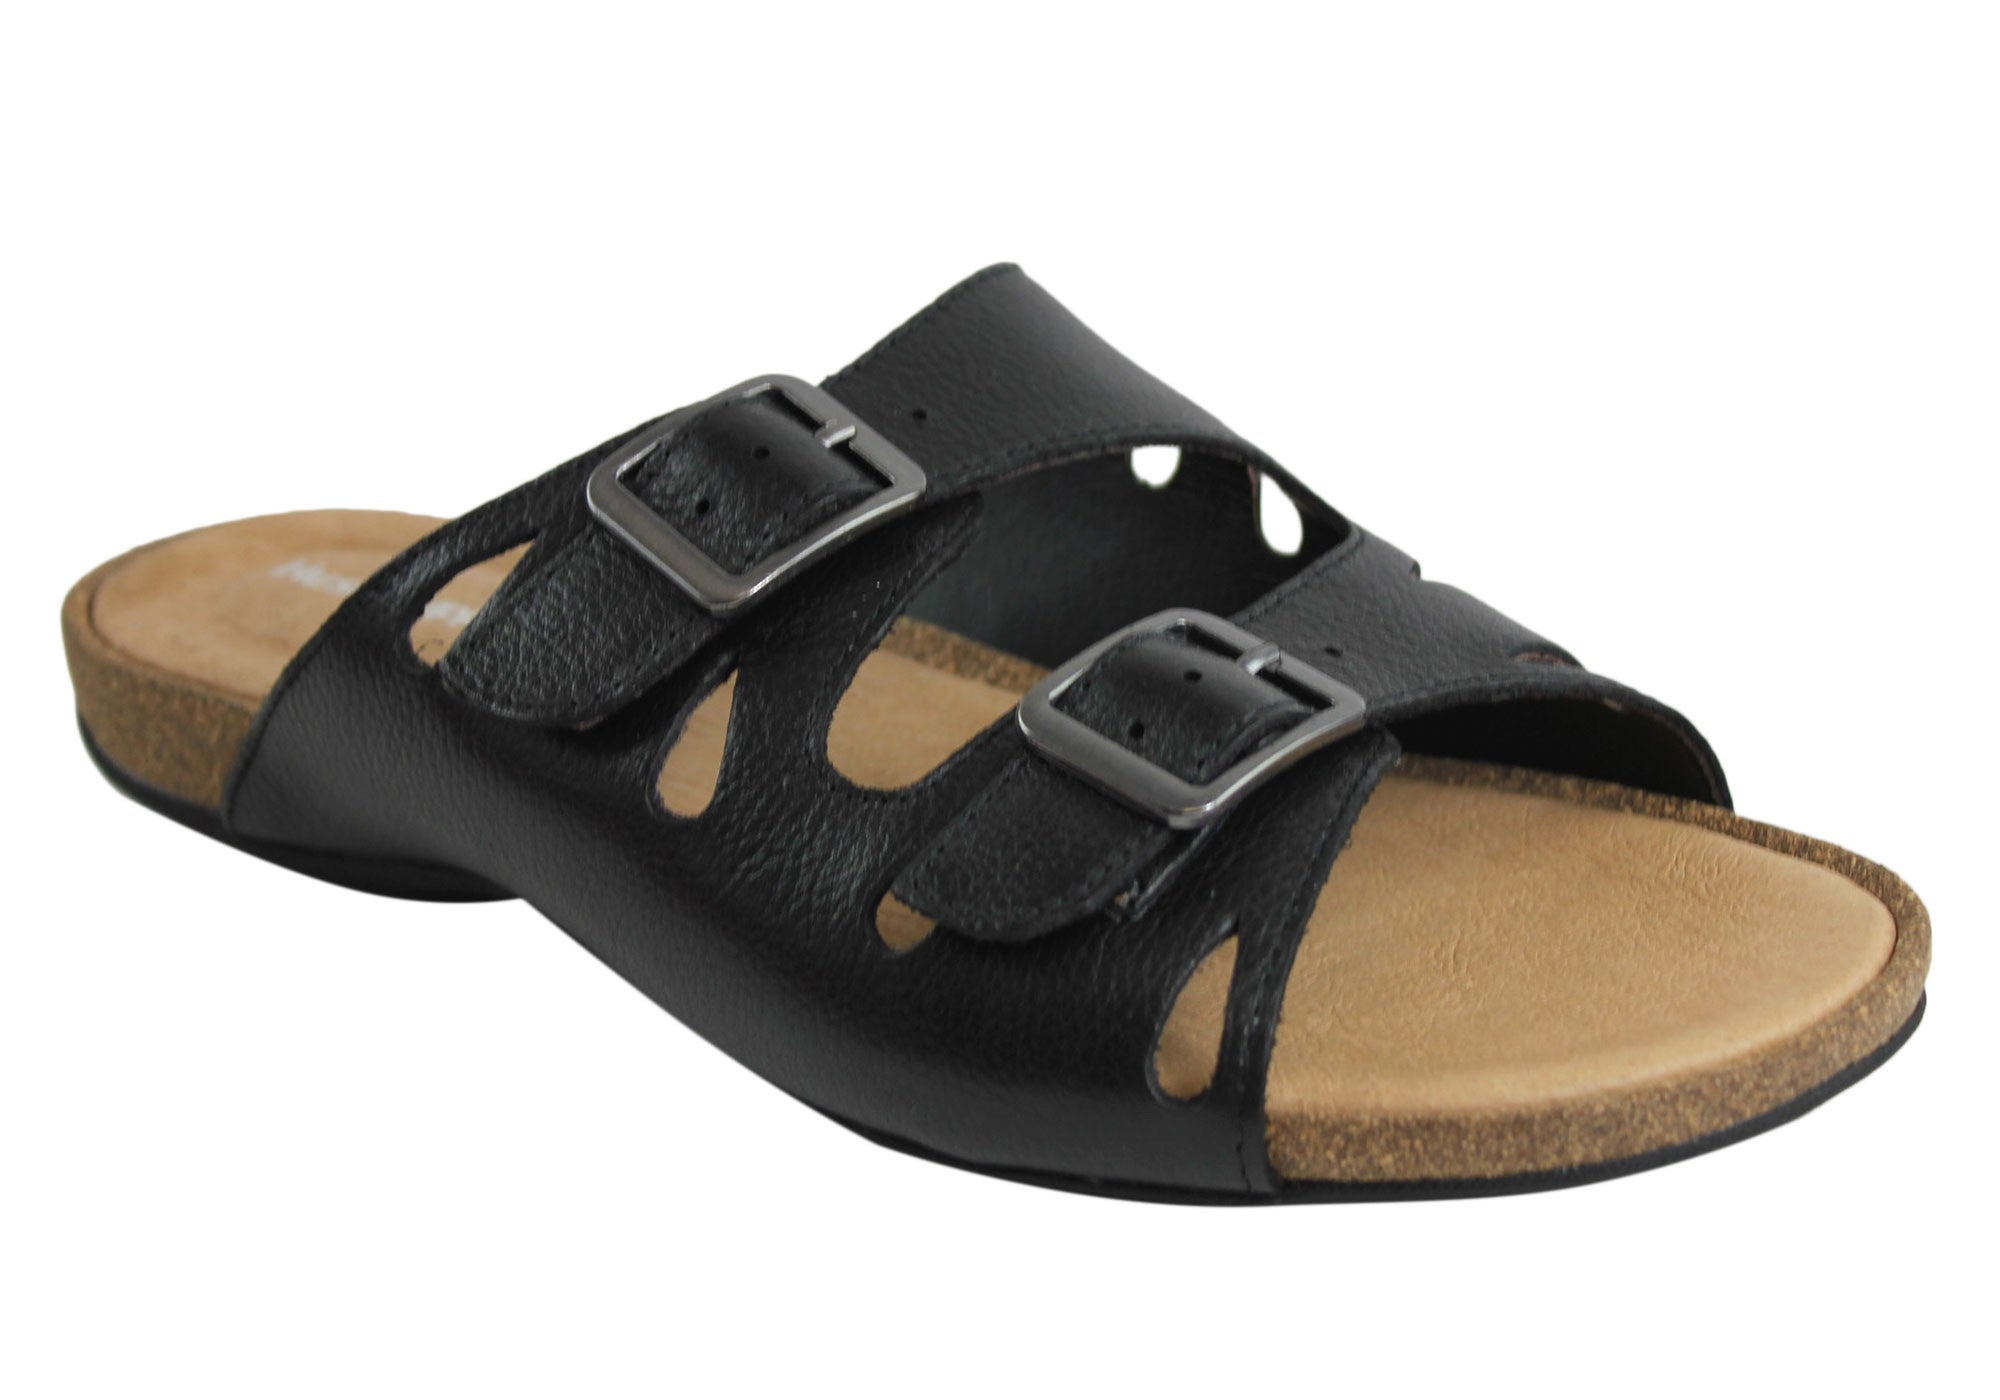 Hush Puppies Arcadia Womens Leather Comfort Slides